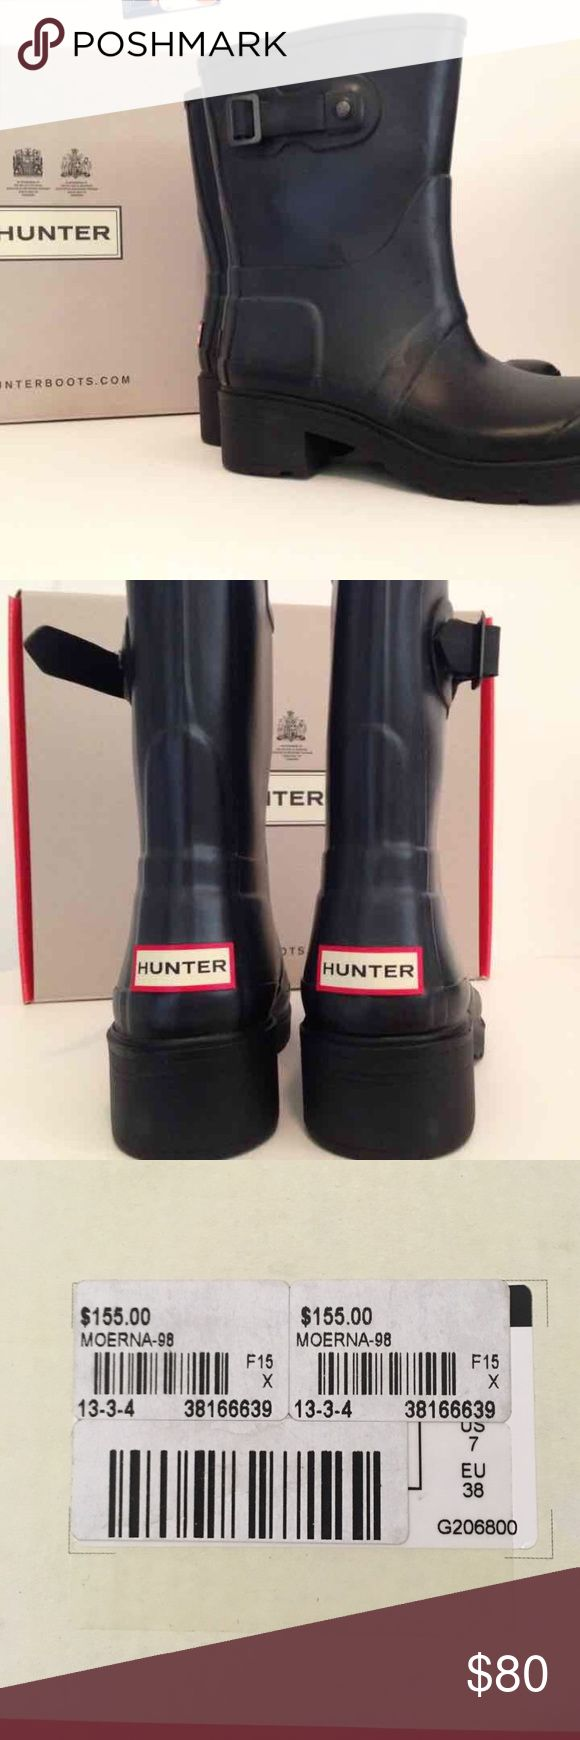 Hunter short boot Gently worn like new great boot will last a long time this style isn't seen often can ship with box and kiwi shine sponge :) Hunter Boots Shoes Winter & Rain Boots